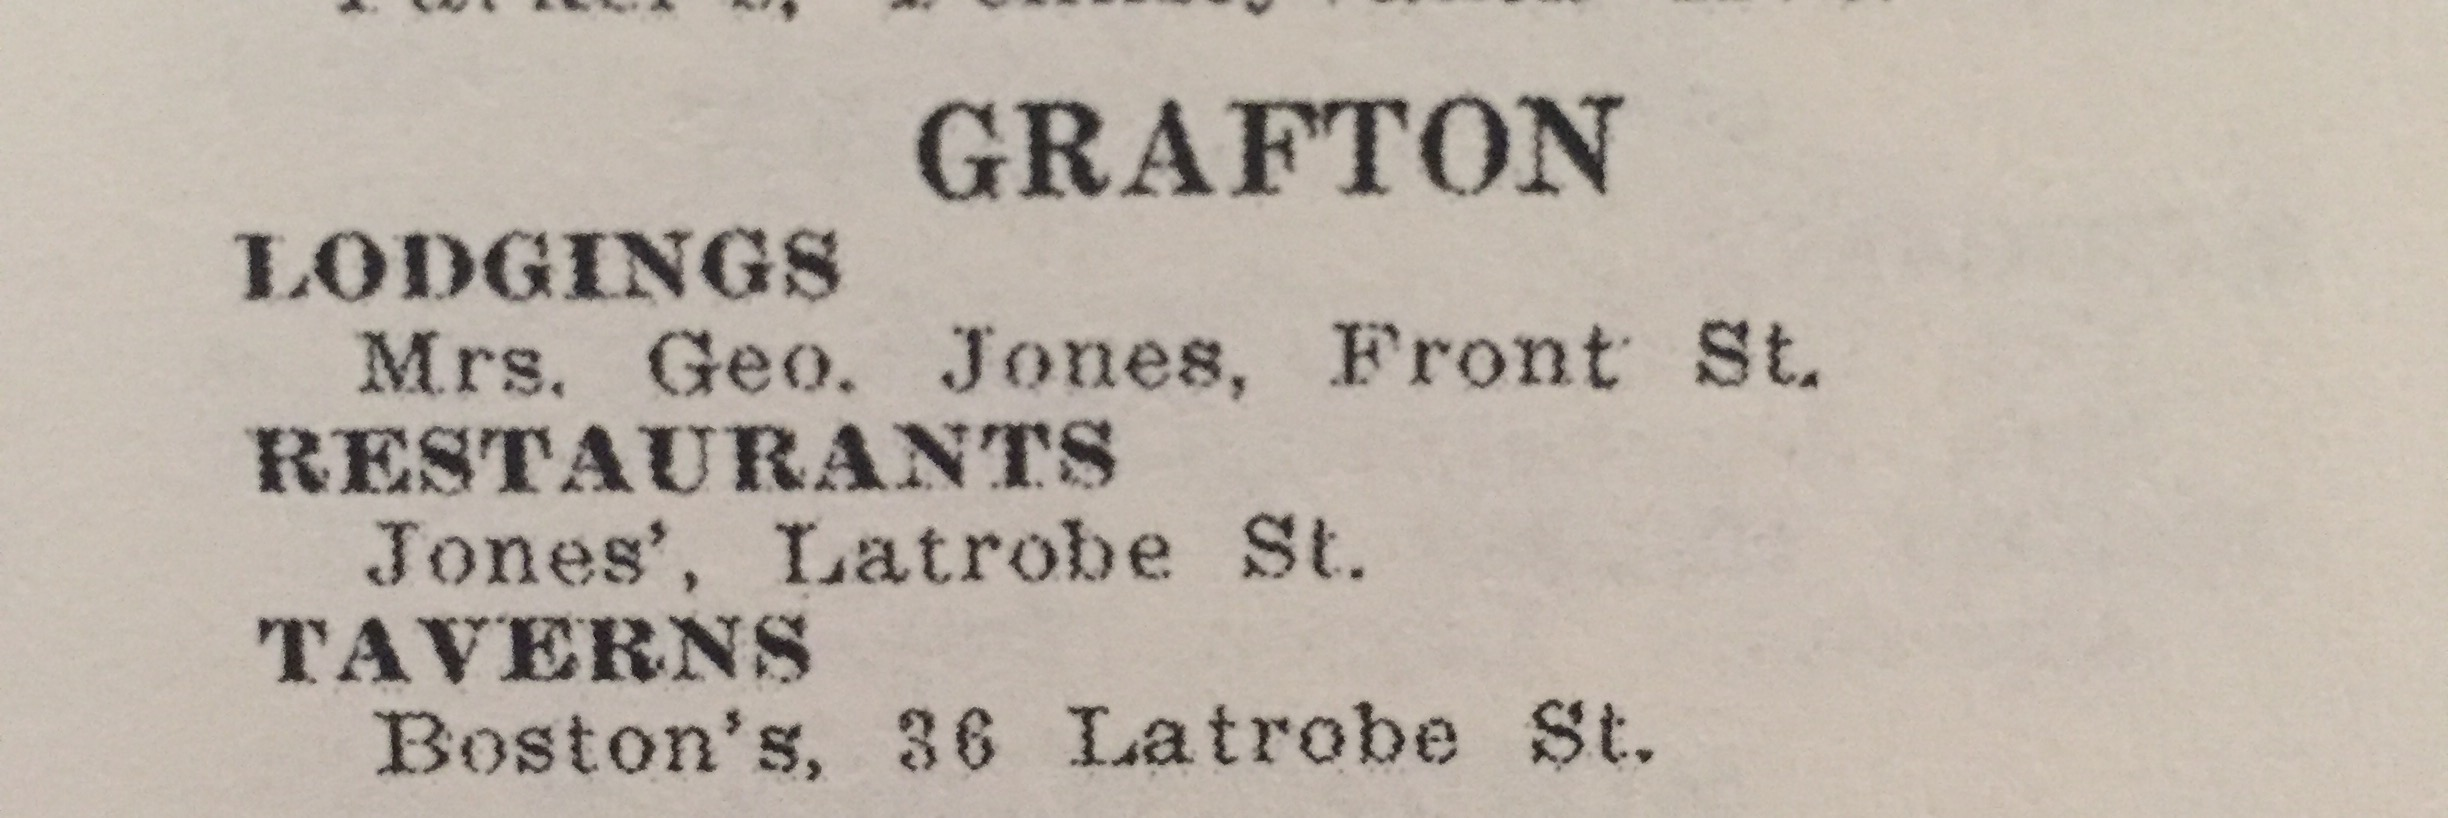 More listings in the Grafton area in the 1954 edition.